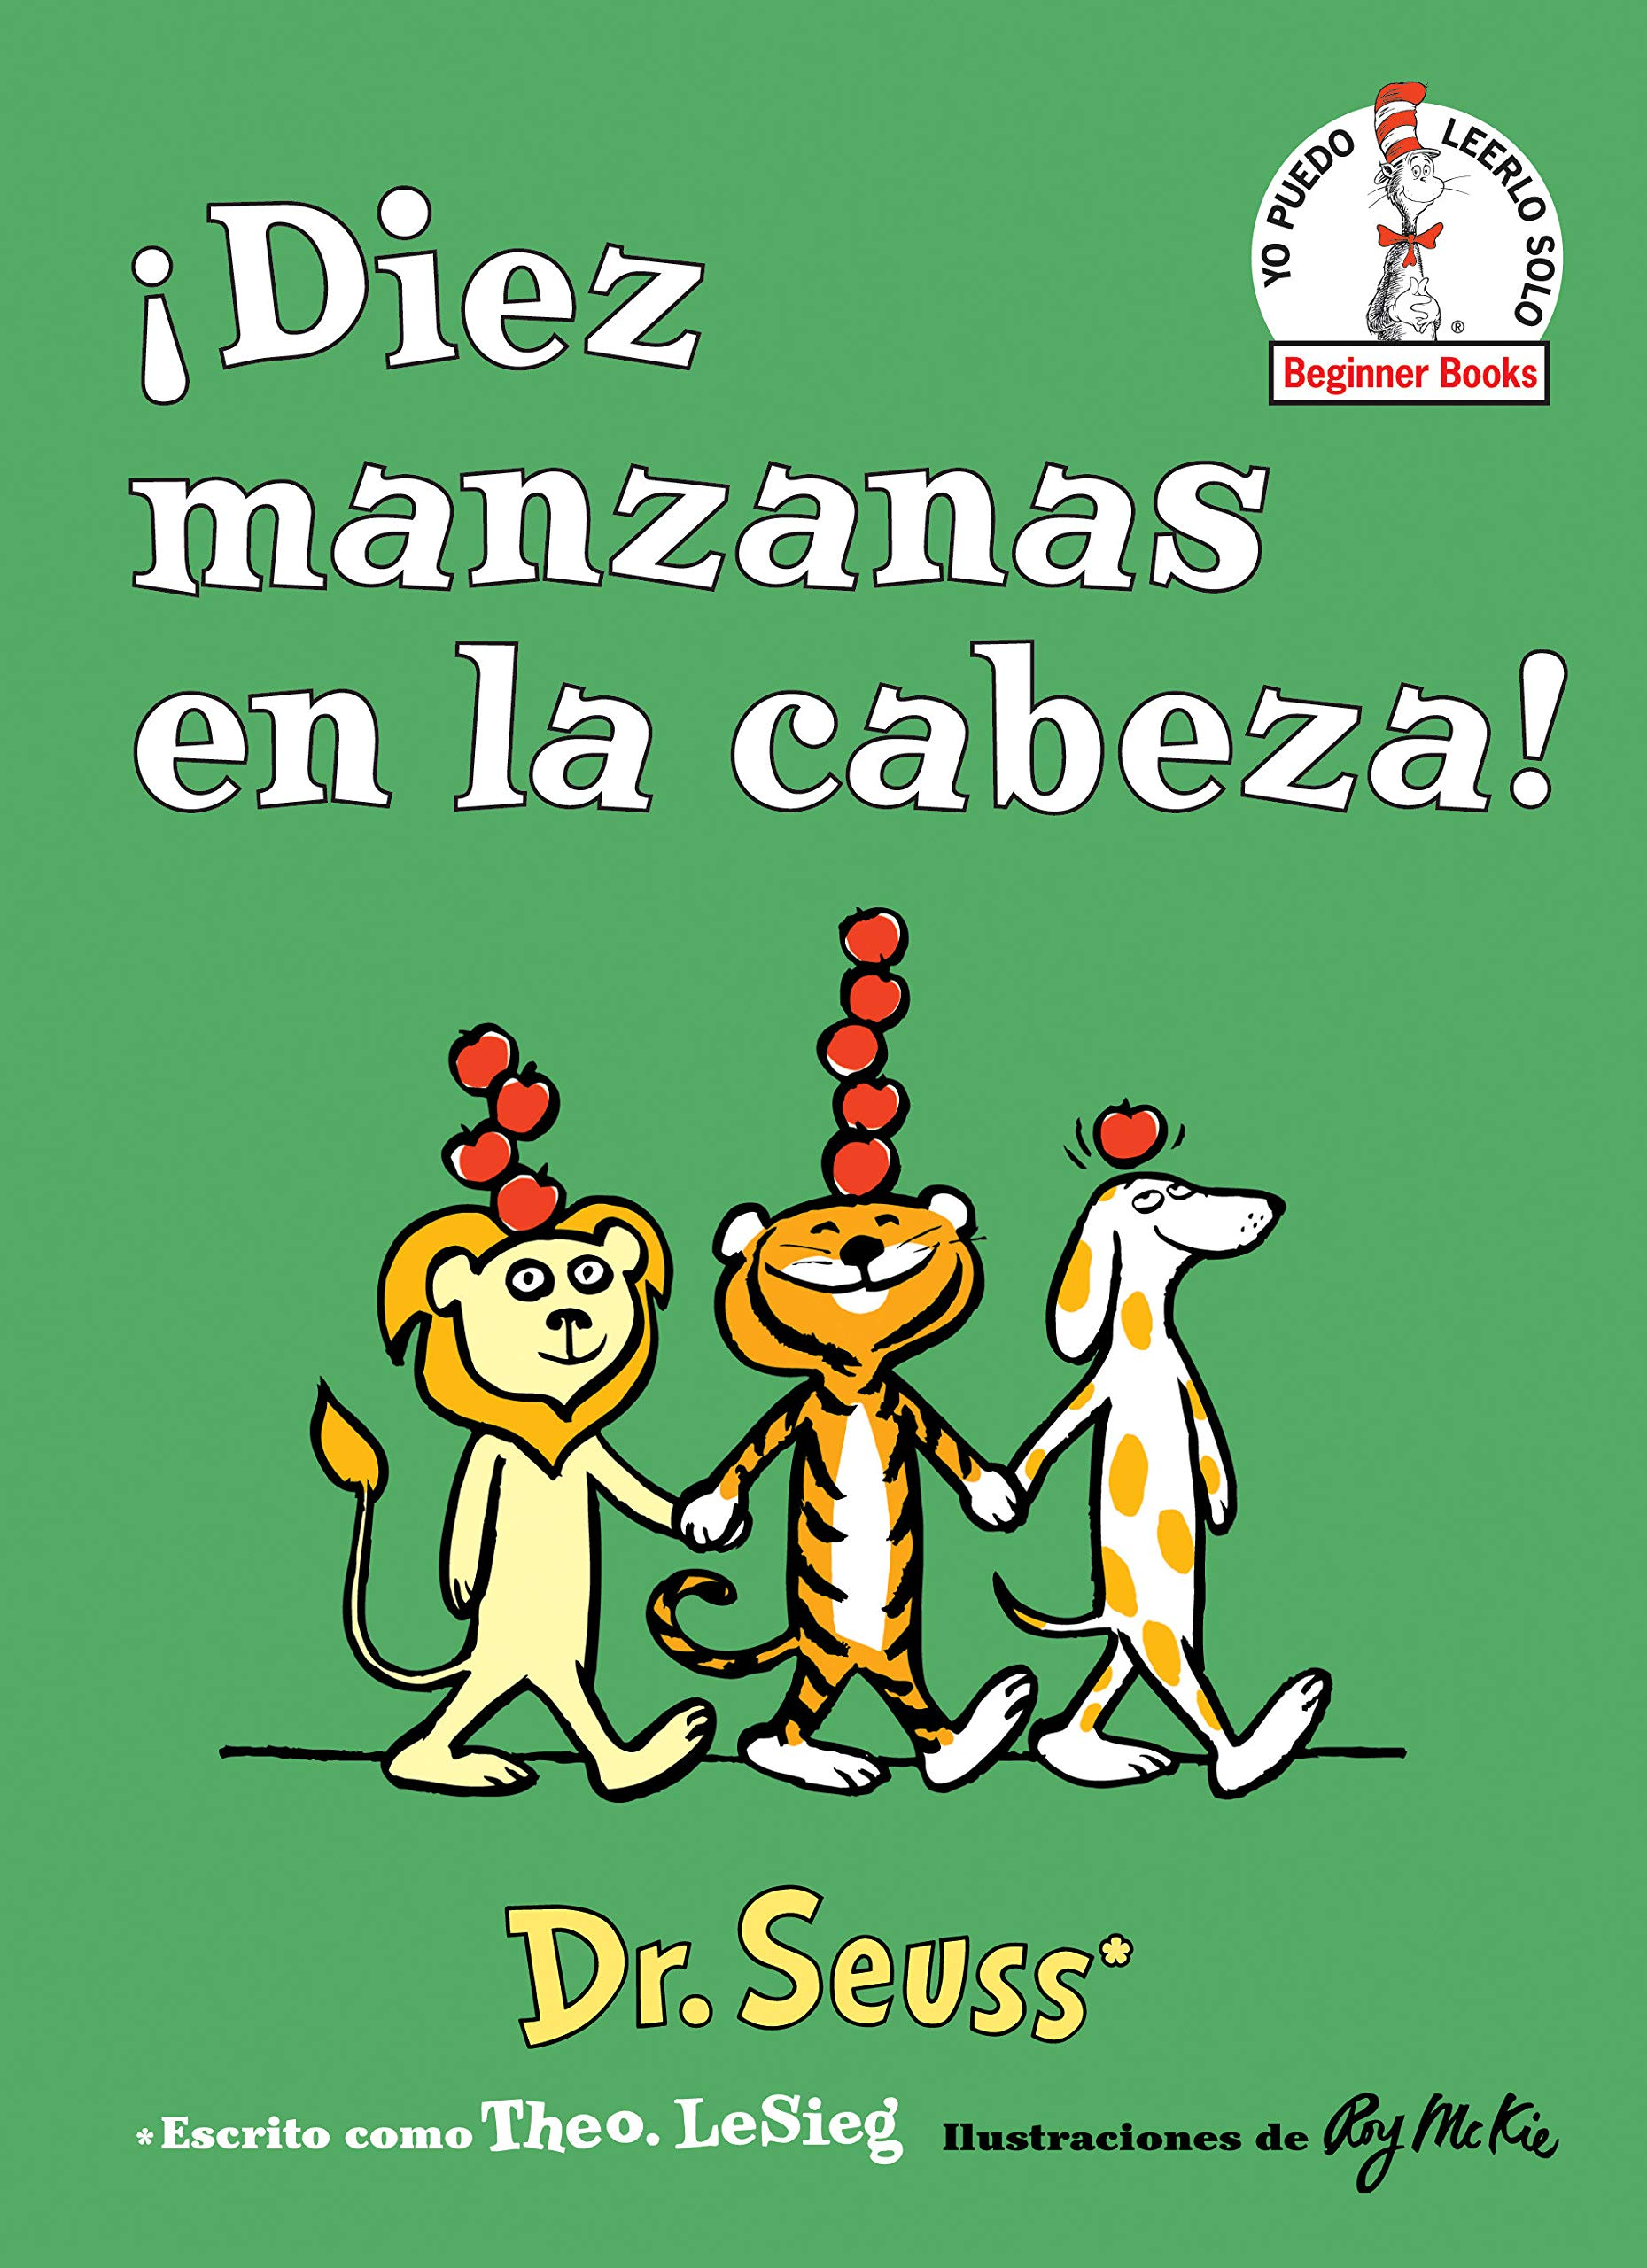 Diez manzanas en la cabeza! (Ten Apples Up on Top! Spanish Edition) (Beginner Books(R))